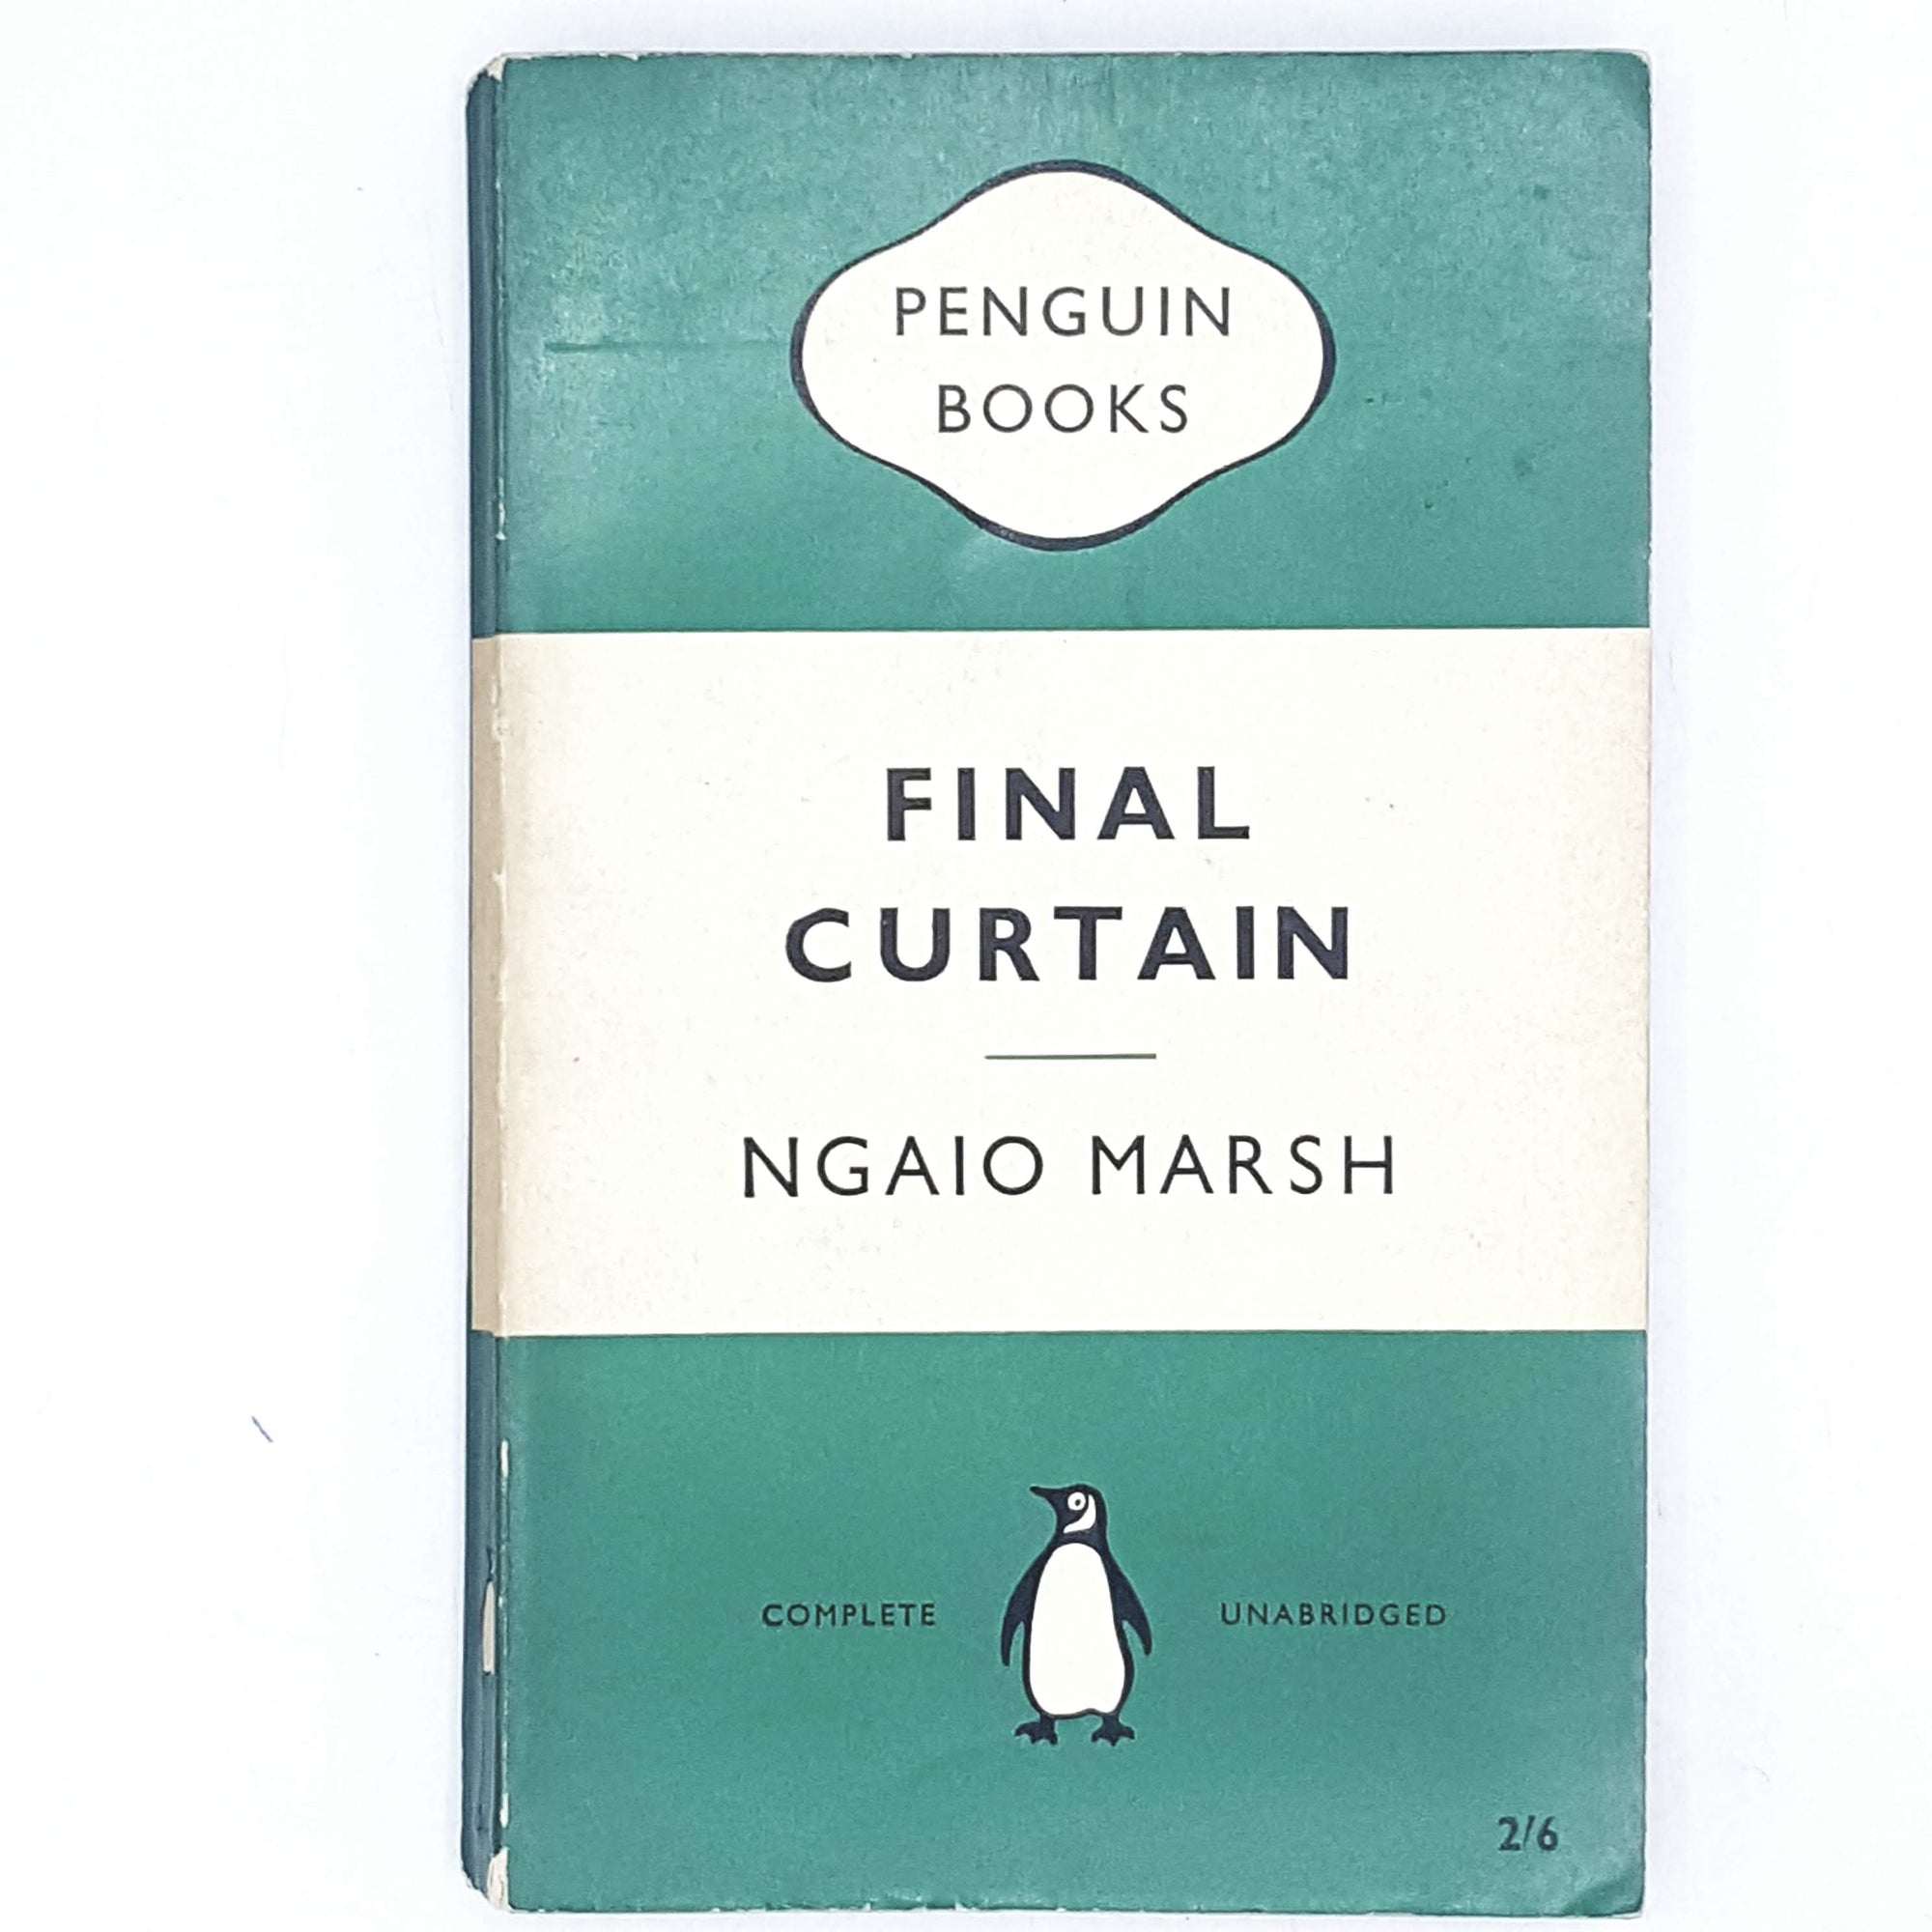 Vintage Penguin Nagio Marsh's Final Curtain 1959